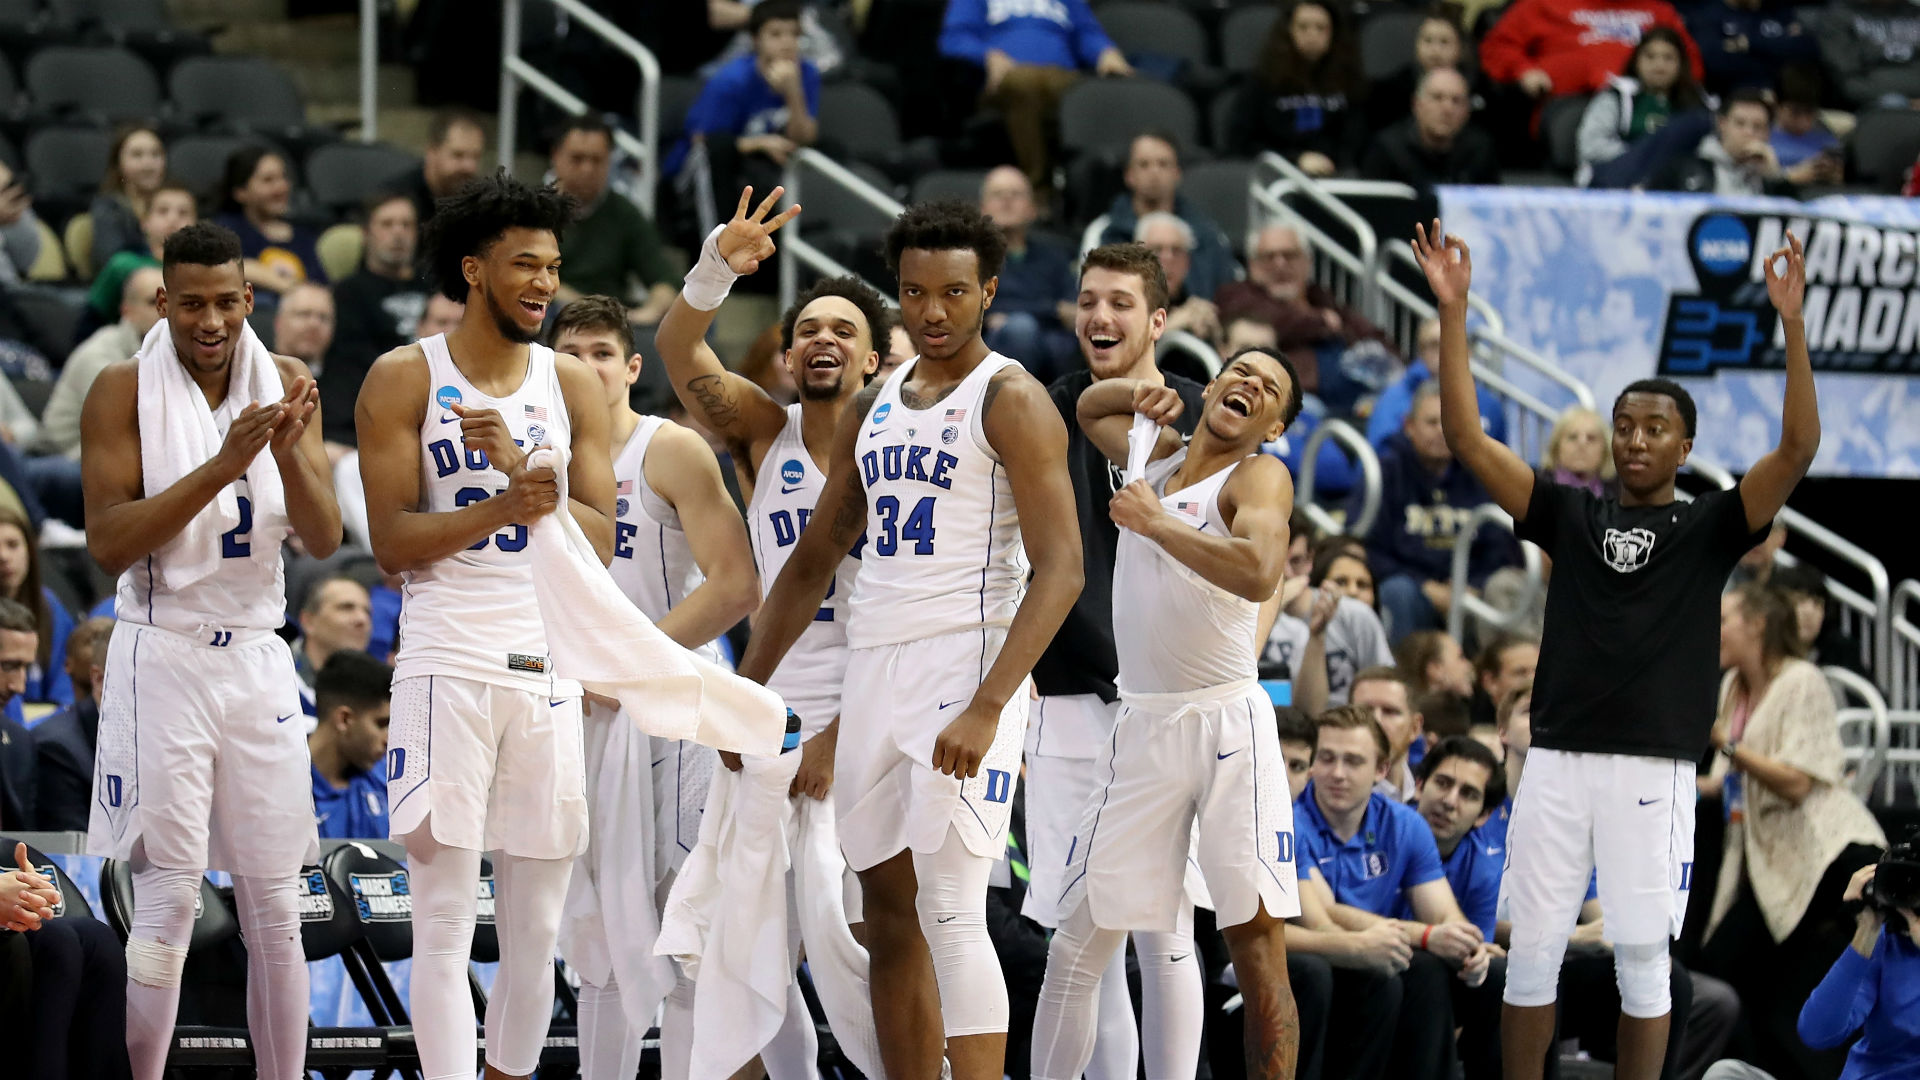 Another record for Duke's Coach K, as the wins pile up